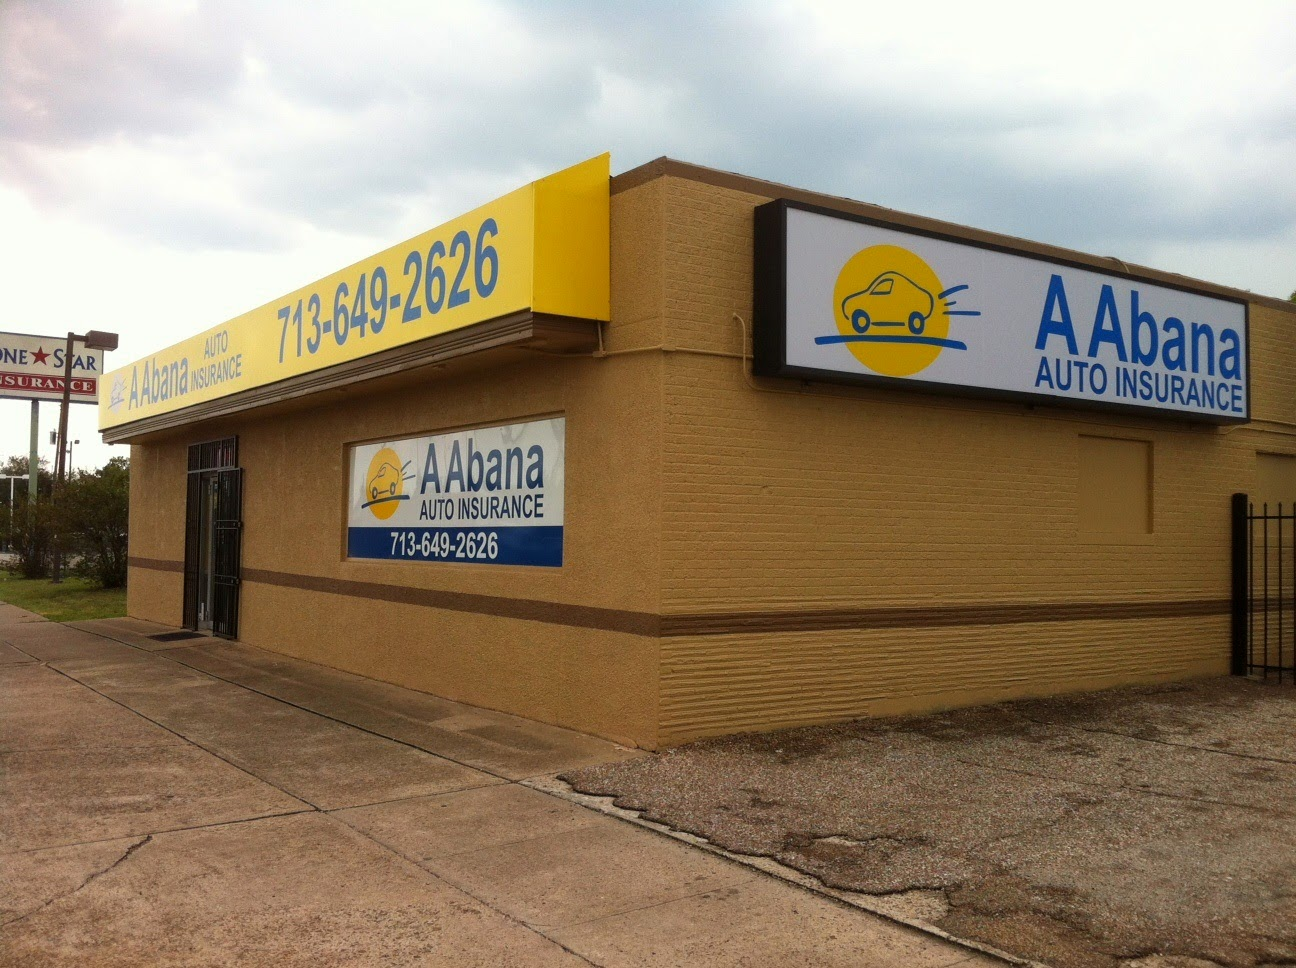 A-Affordable Auto Insurance in Houston, TX 77017 | Citysearch